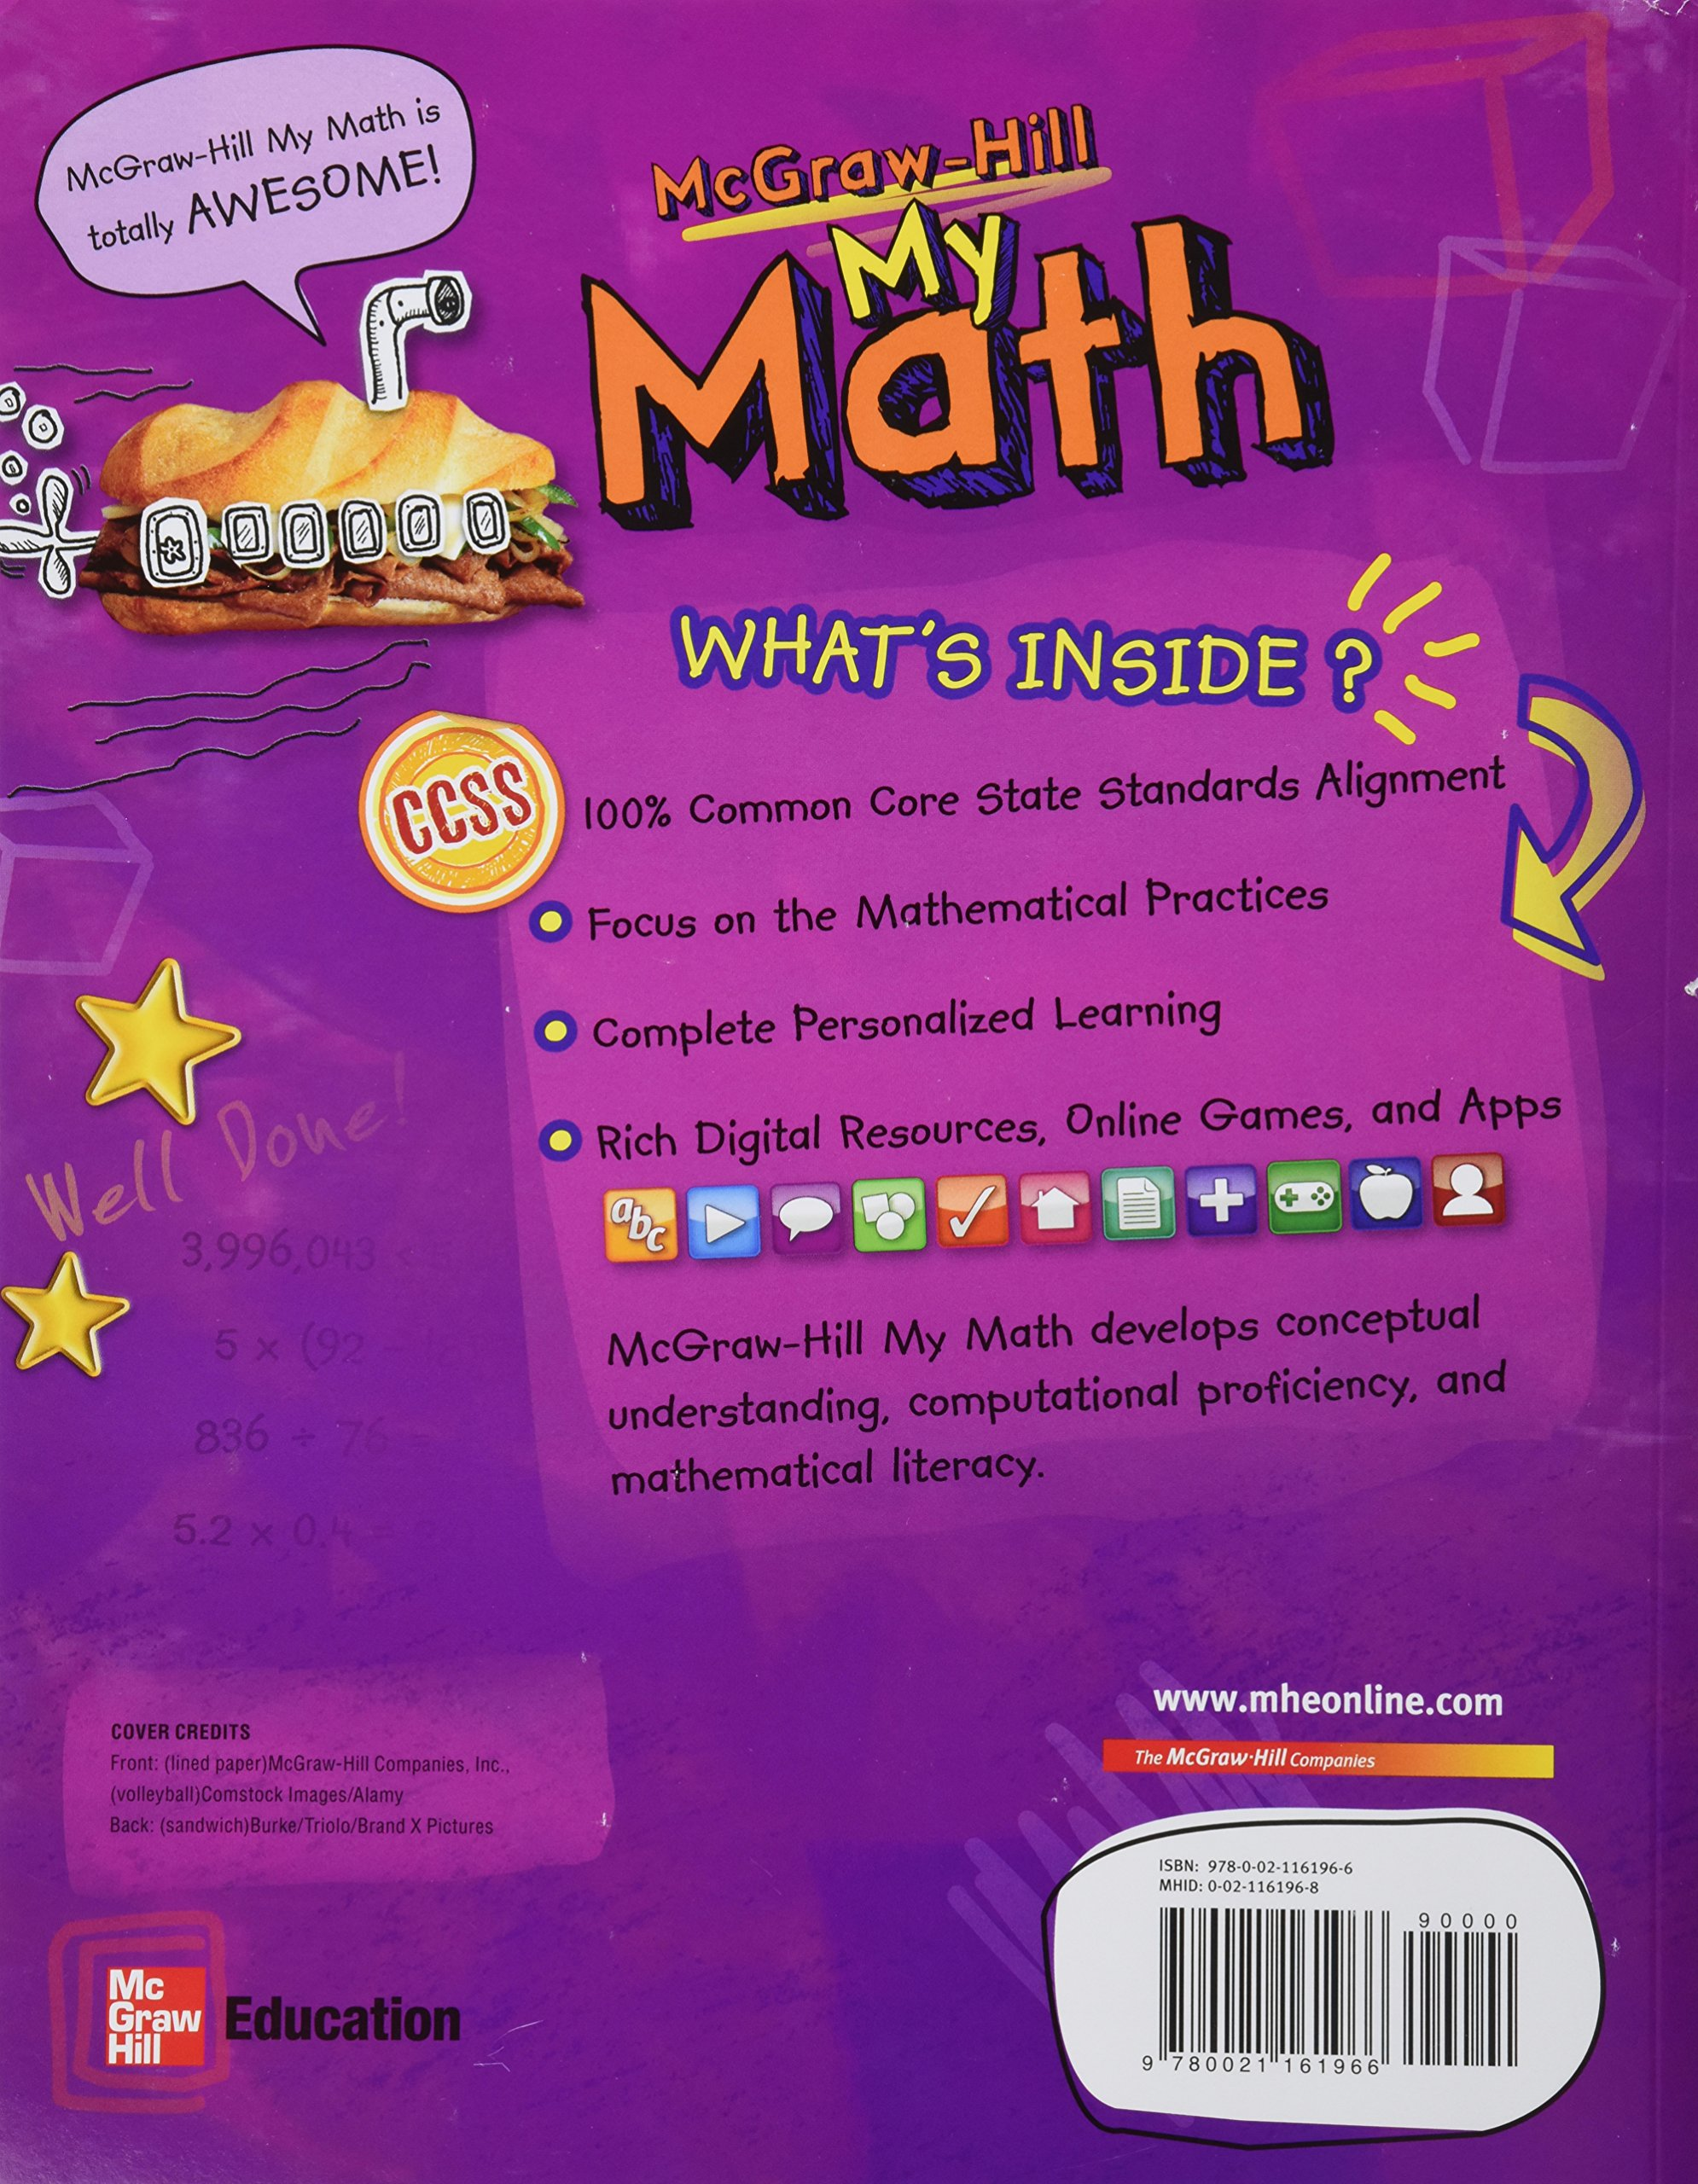 worksheet Mcgraw Hill Math Worksheets buy 2 mcgraw hill my math grade 5 book online at low prices in india reviews ratings amazo